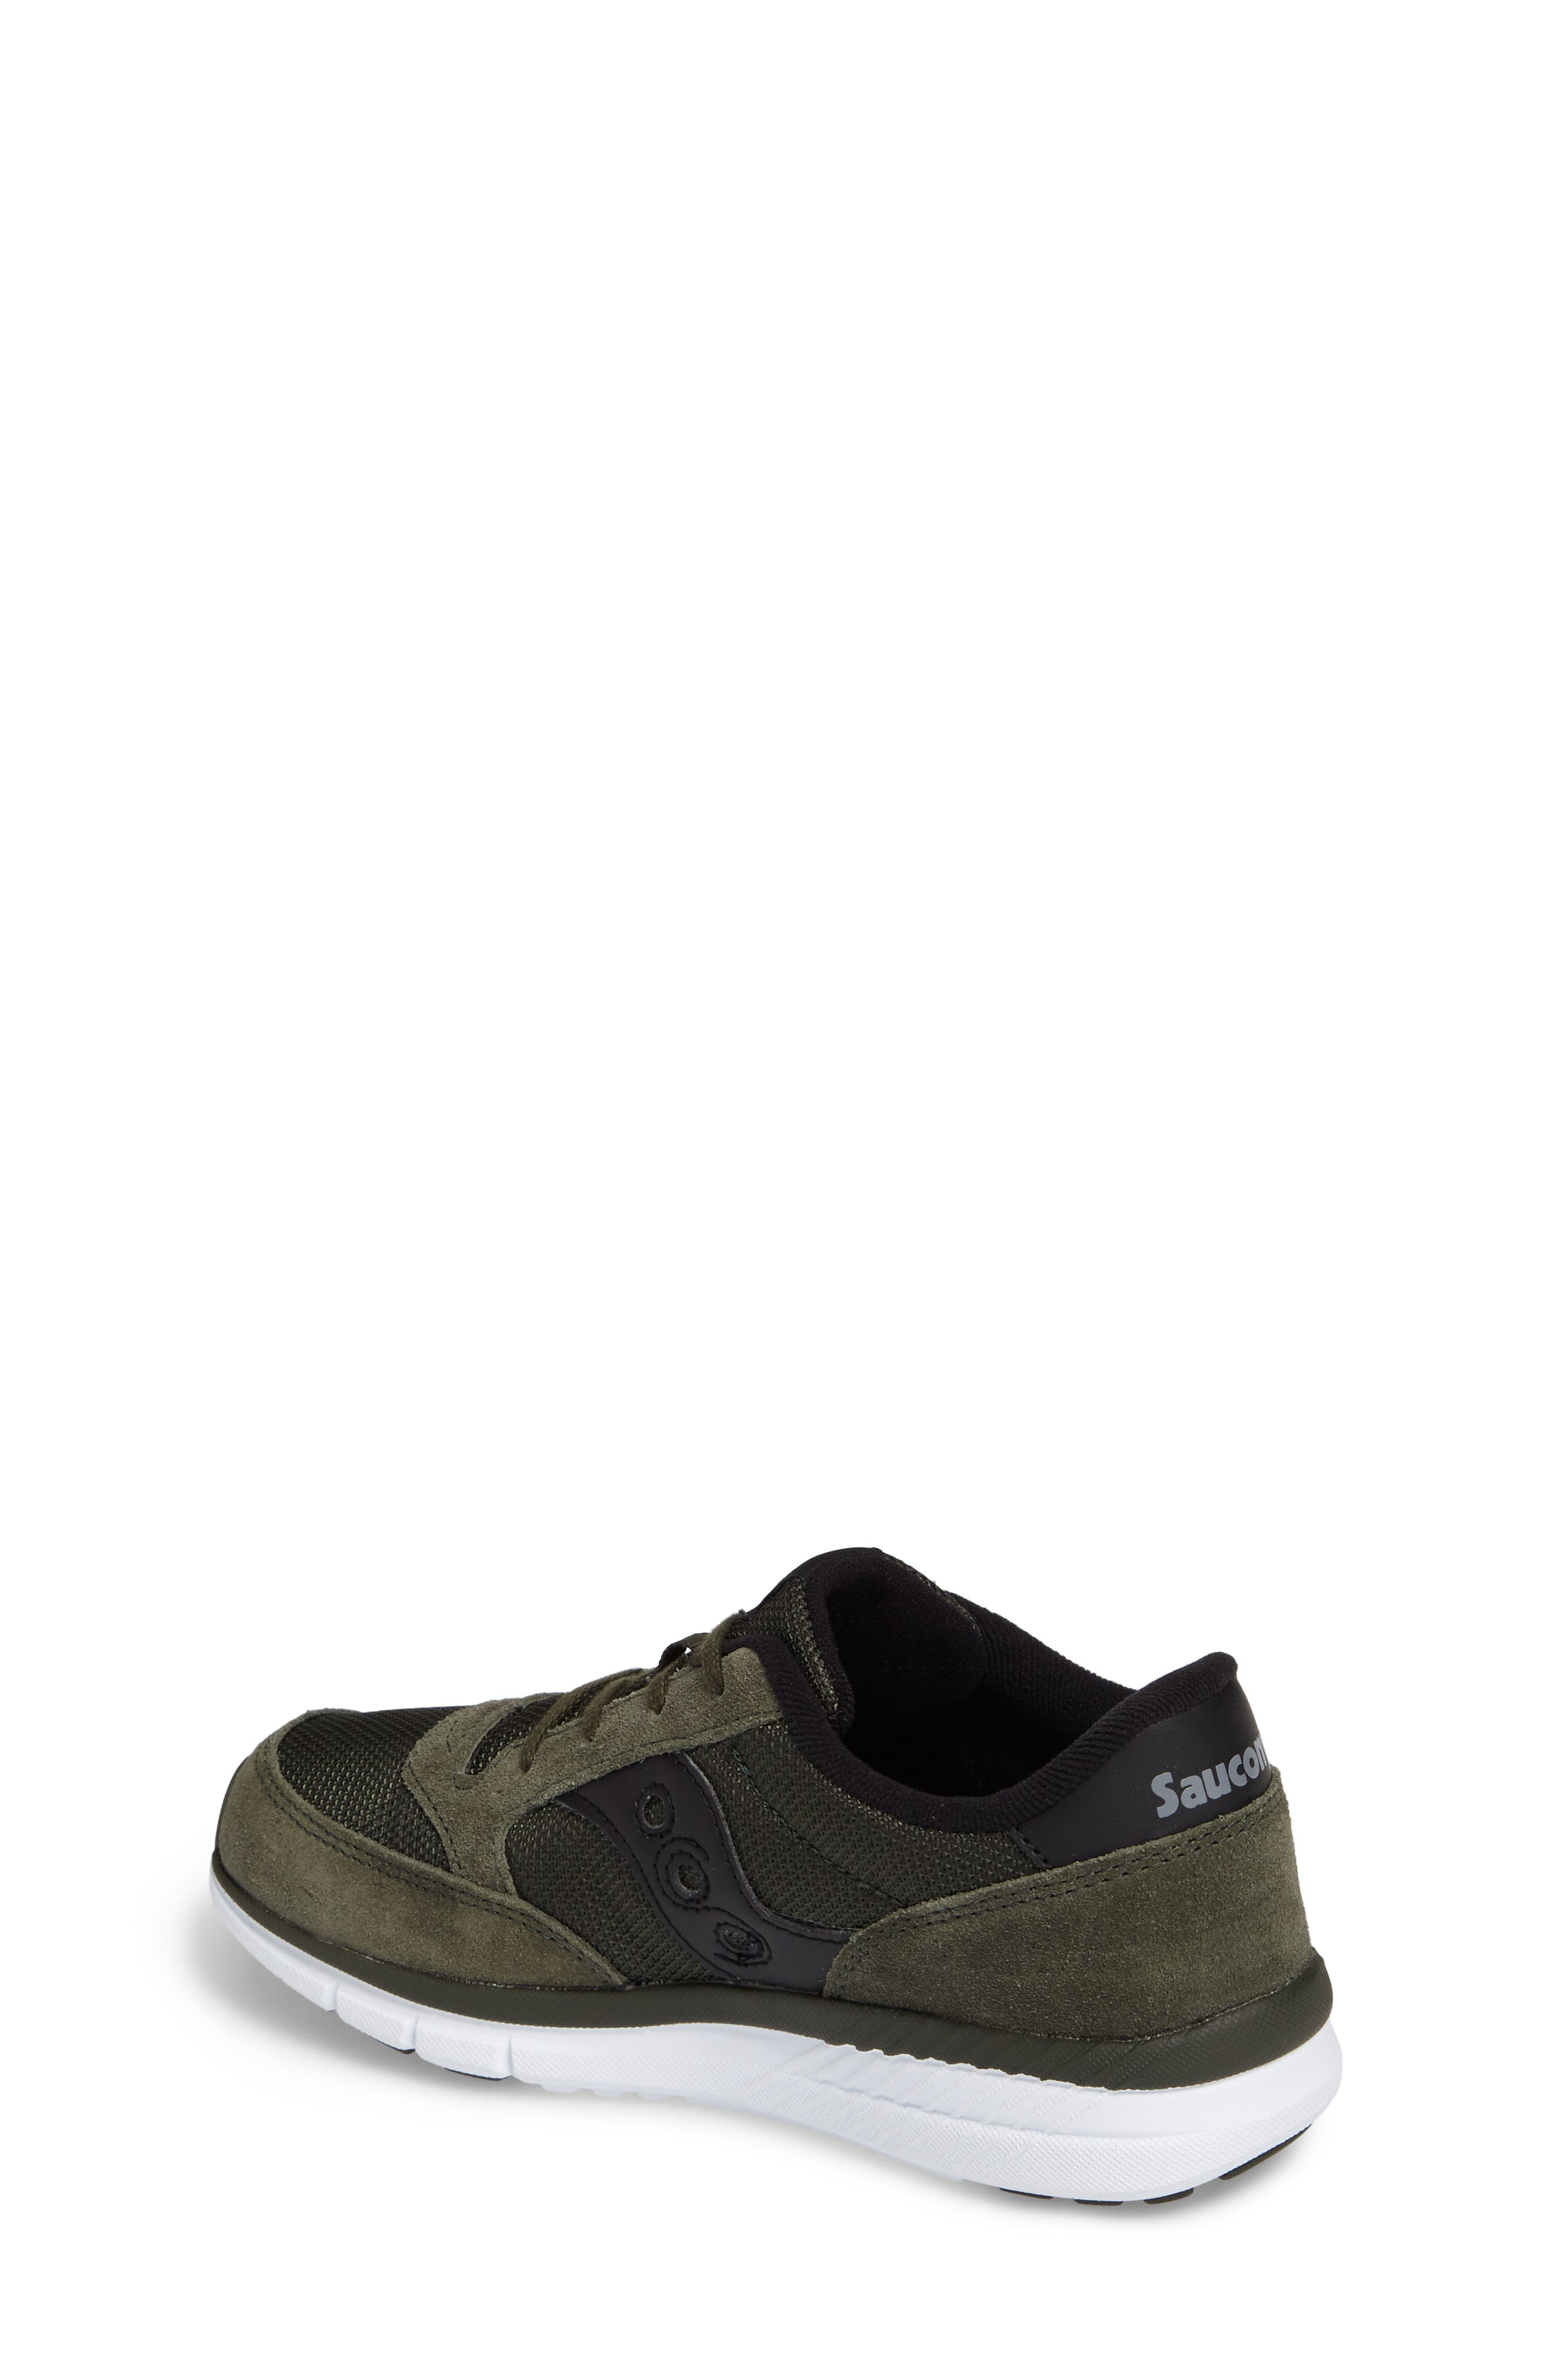 Jazz Lite Sneaker,                             Alternate thumbnail 2, color,                             Olive